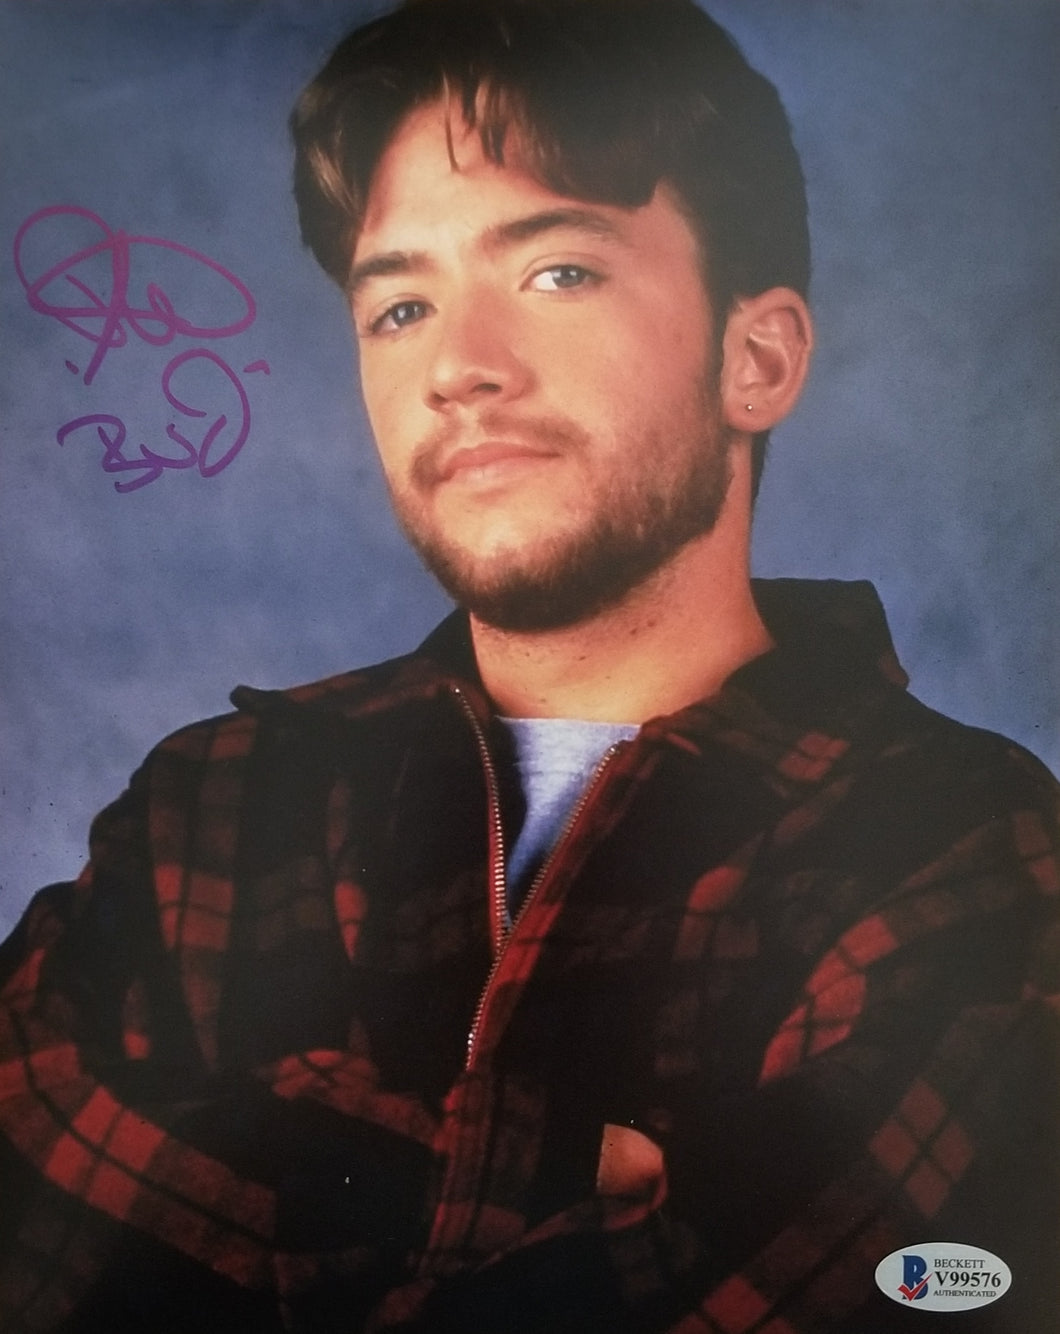 David Faustino - Signed Bud Bundy 8x10 Photo #2